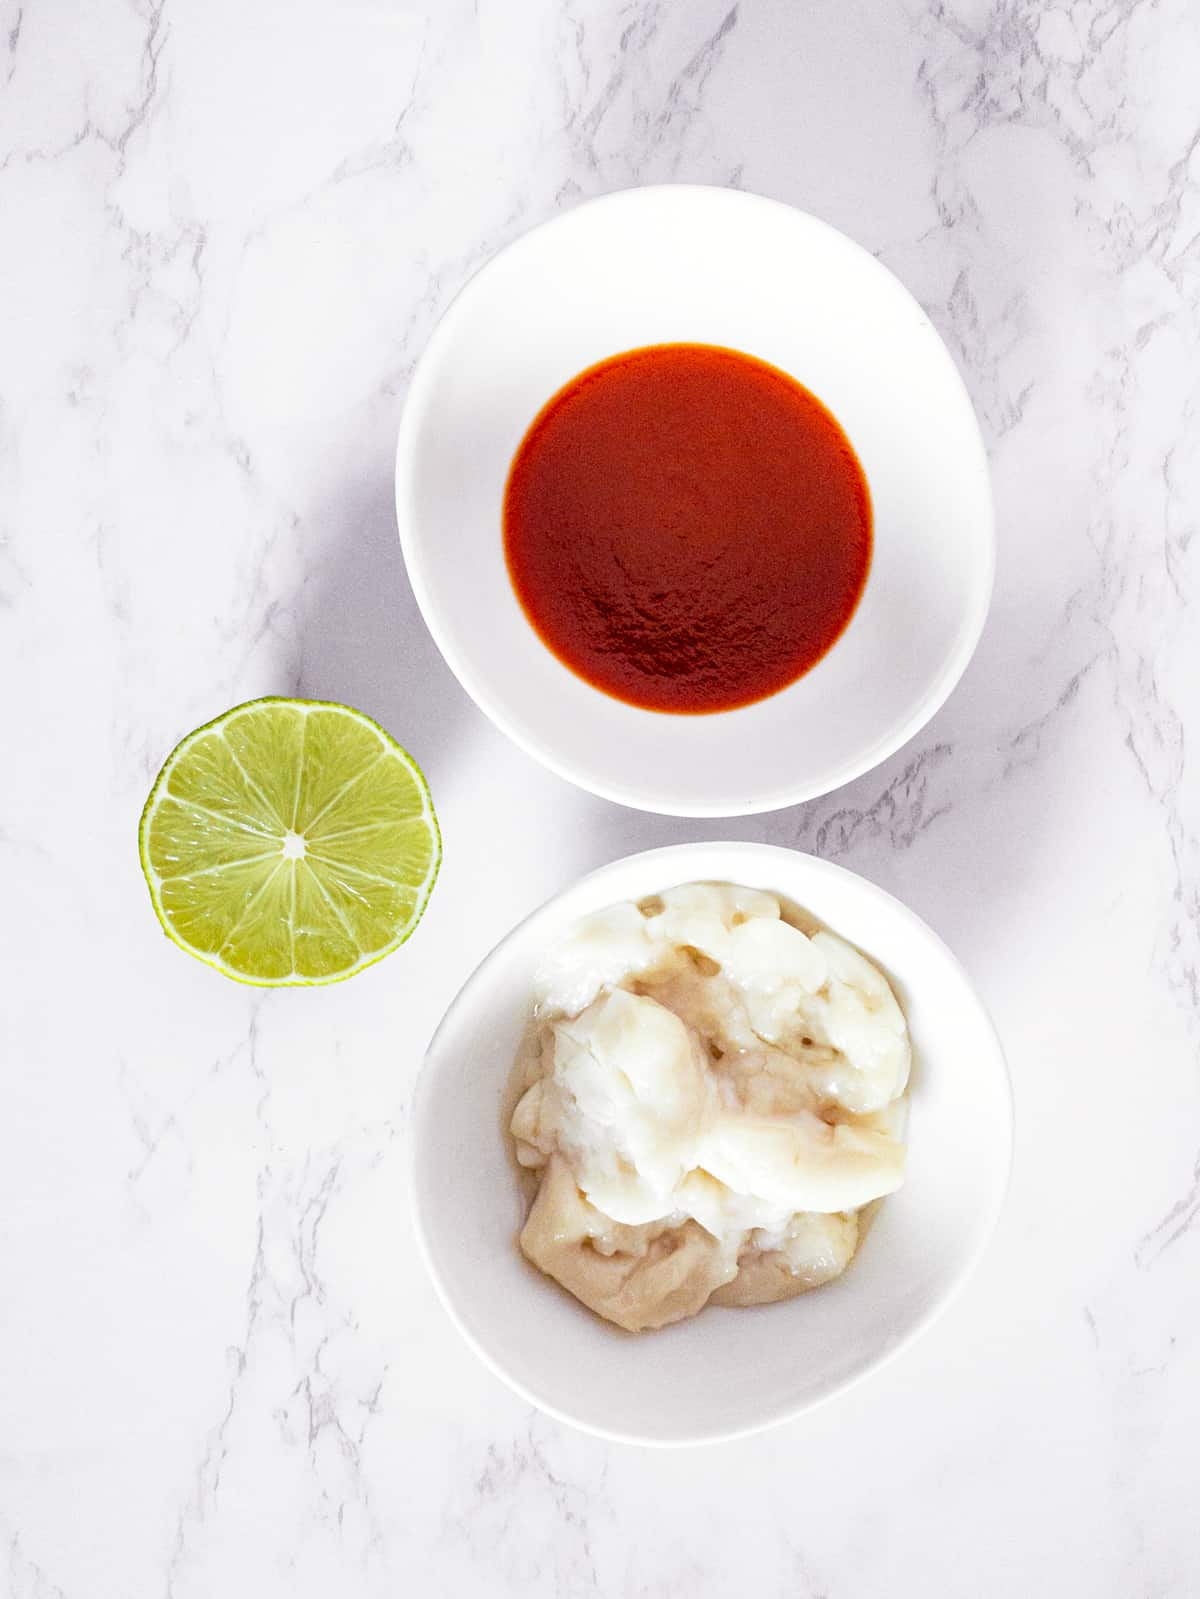 two bowls on a marble countertop containing sriracha sauce and mayonnaise